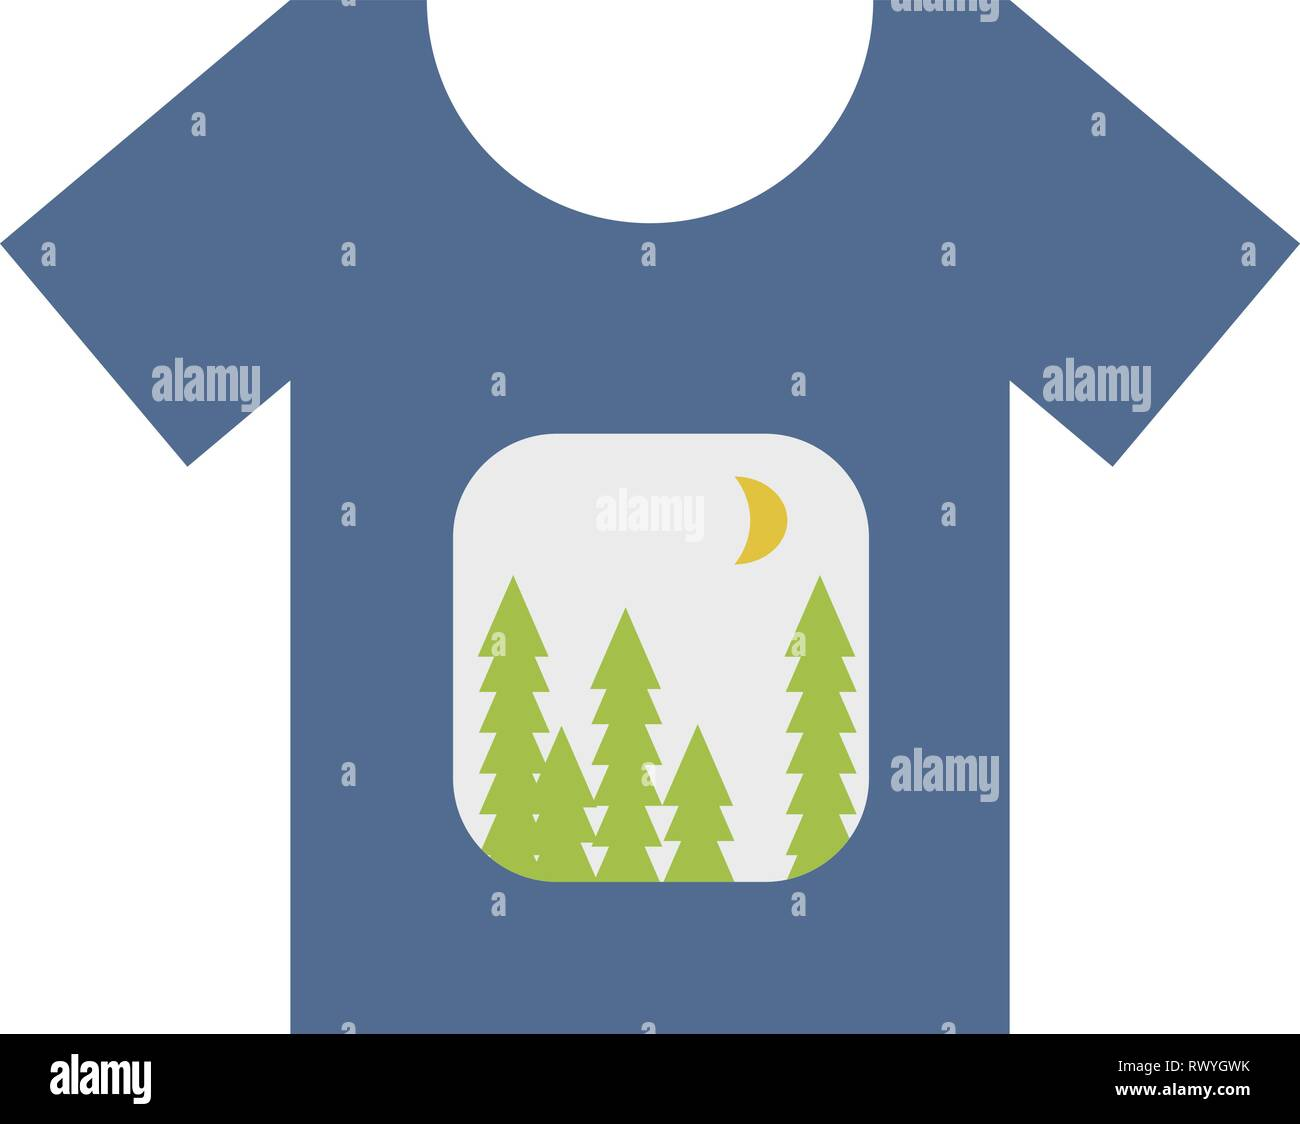 Simple T shirt design for print on demand concept in vector